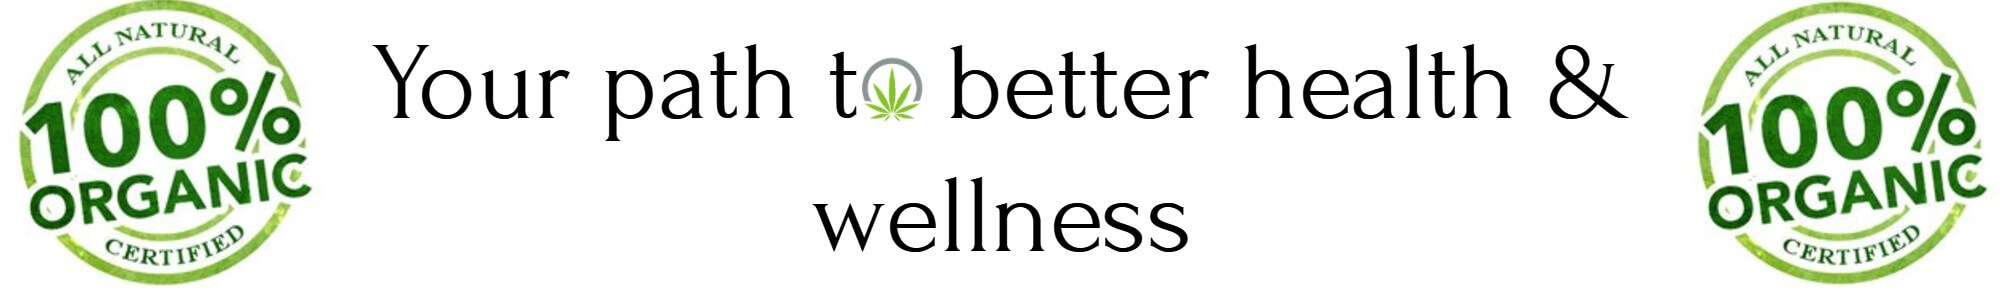 CBD based products have lots of health benefits